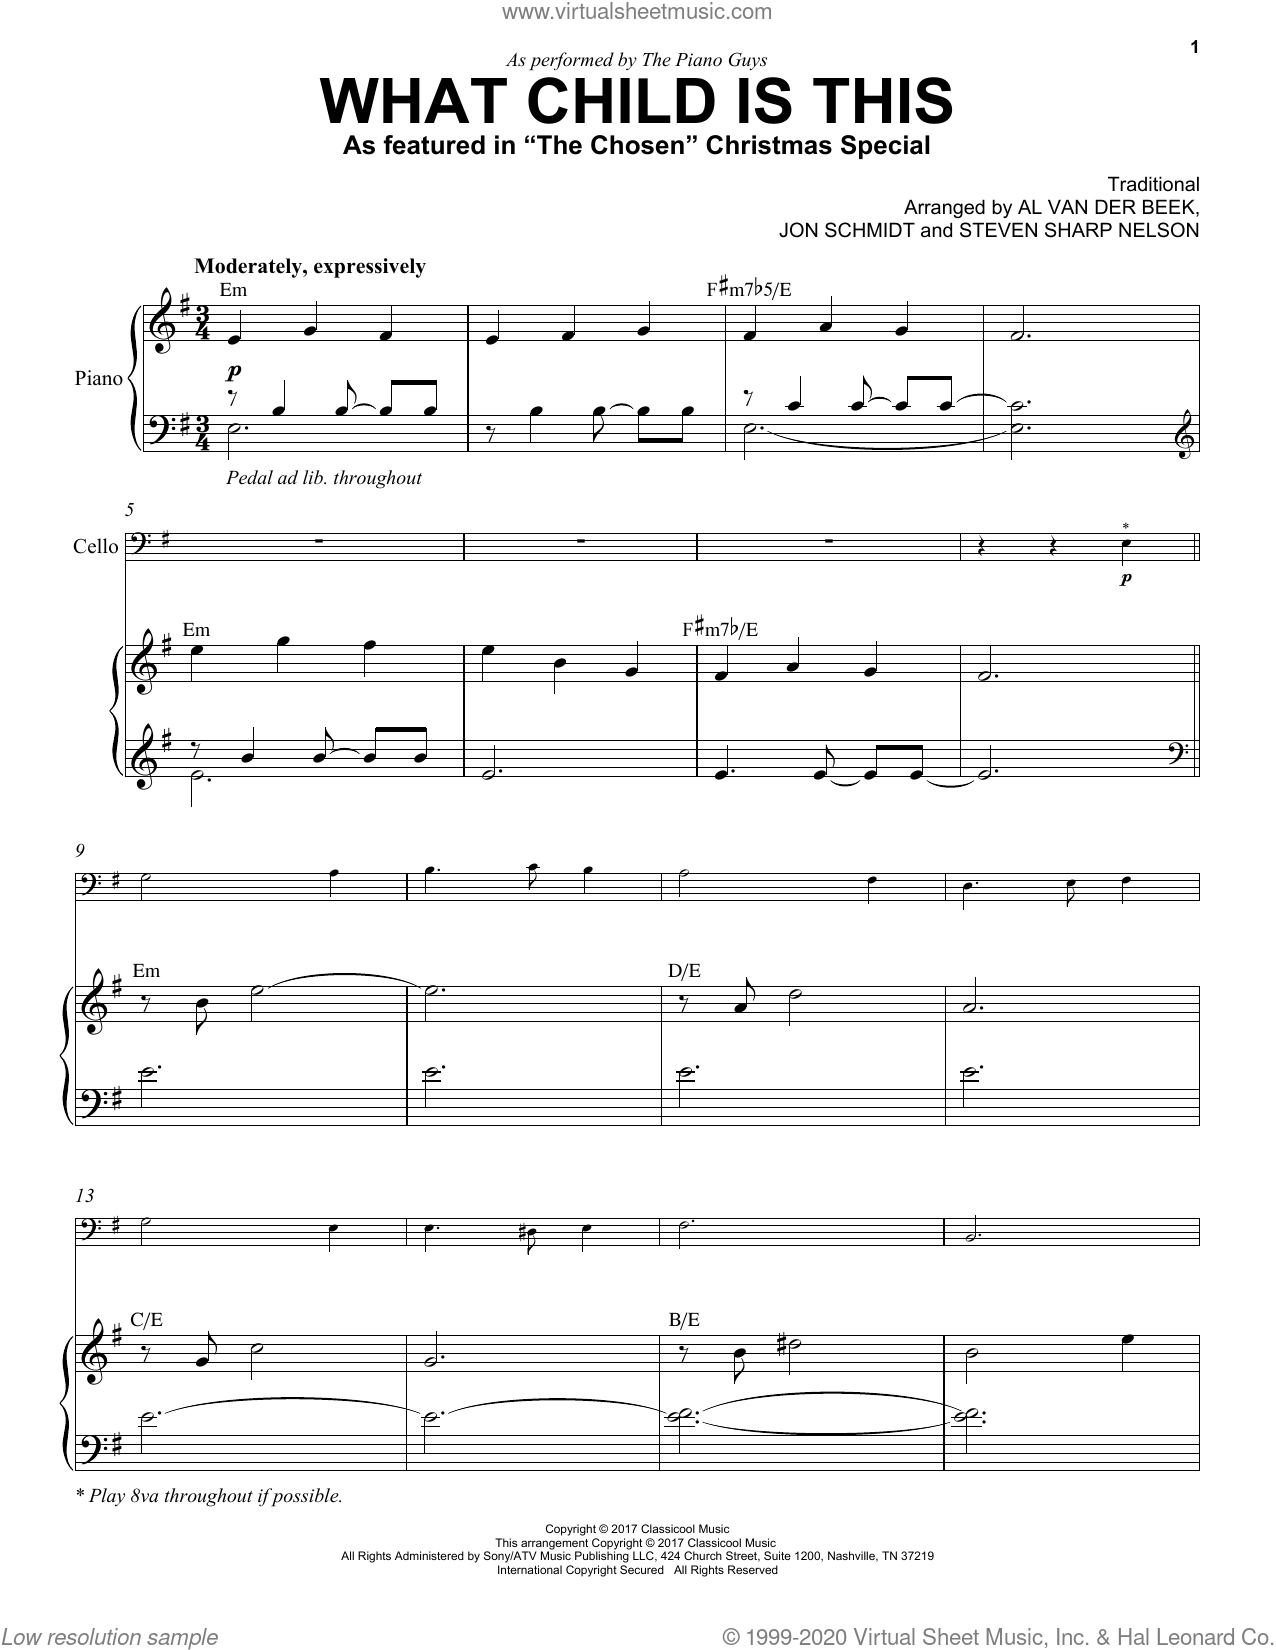 What Child Is This (as featured in 'The Chosen' Christmas Special) sheet music for cello and piano by The Piano Guys, Al van der Beek, Jon Schmidt, Steven Sharp Nelson and Miscellaneous, intermediate skill level